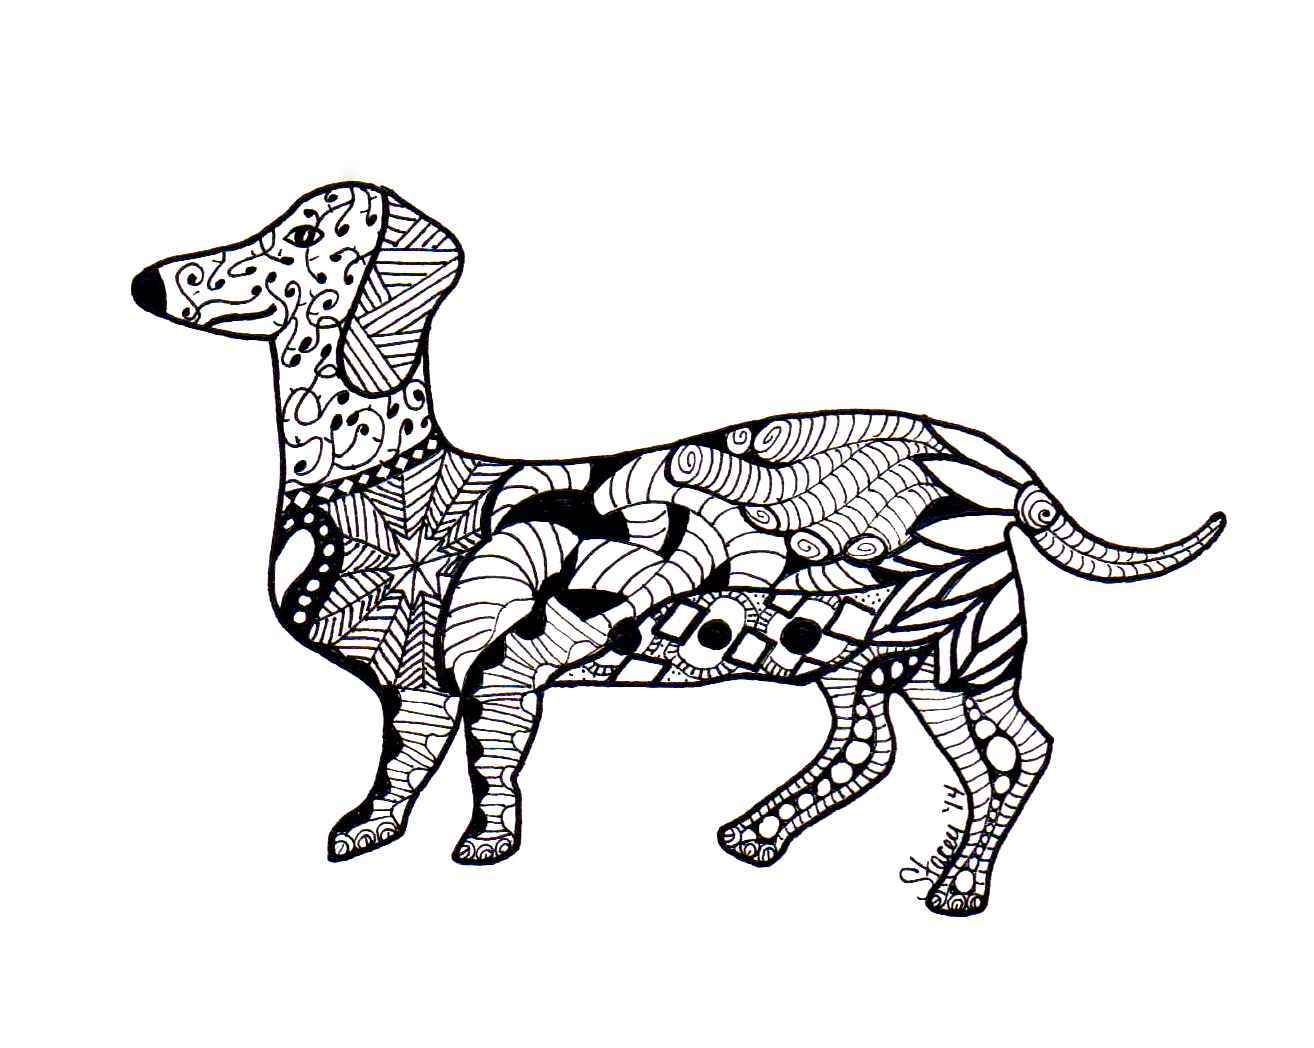 Zentangle Dachshund